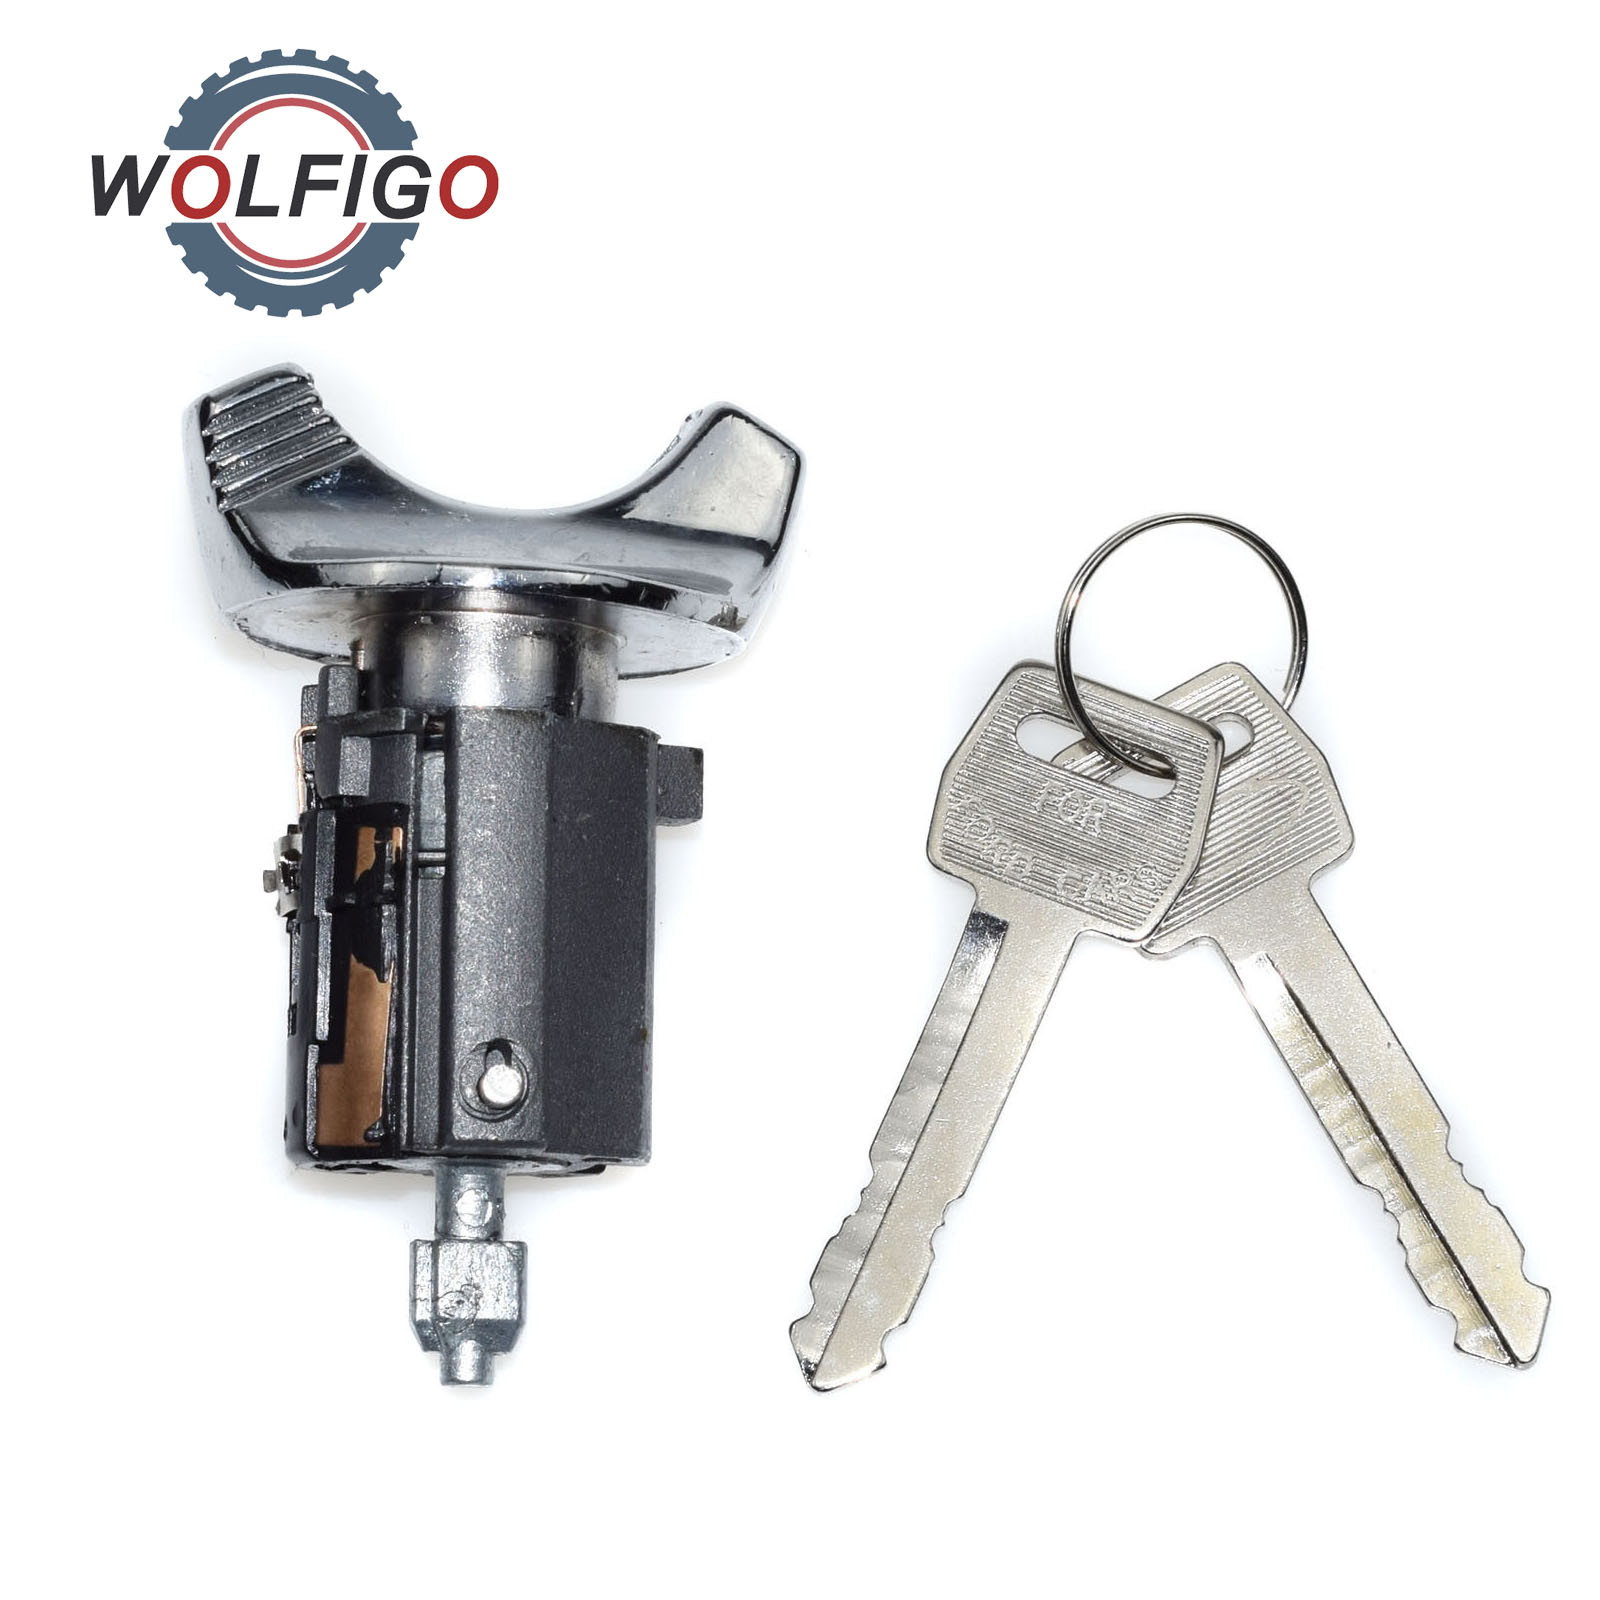 Key For Ford F150 250 350 Pickup For Lincoln/mercury Chrome Metal Silver C-42-150 #20 2019 Ignition Switch Lock Cylinder Automobiles & Motorcycles